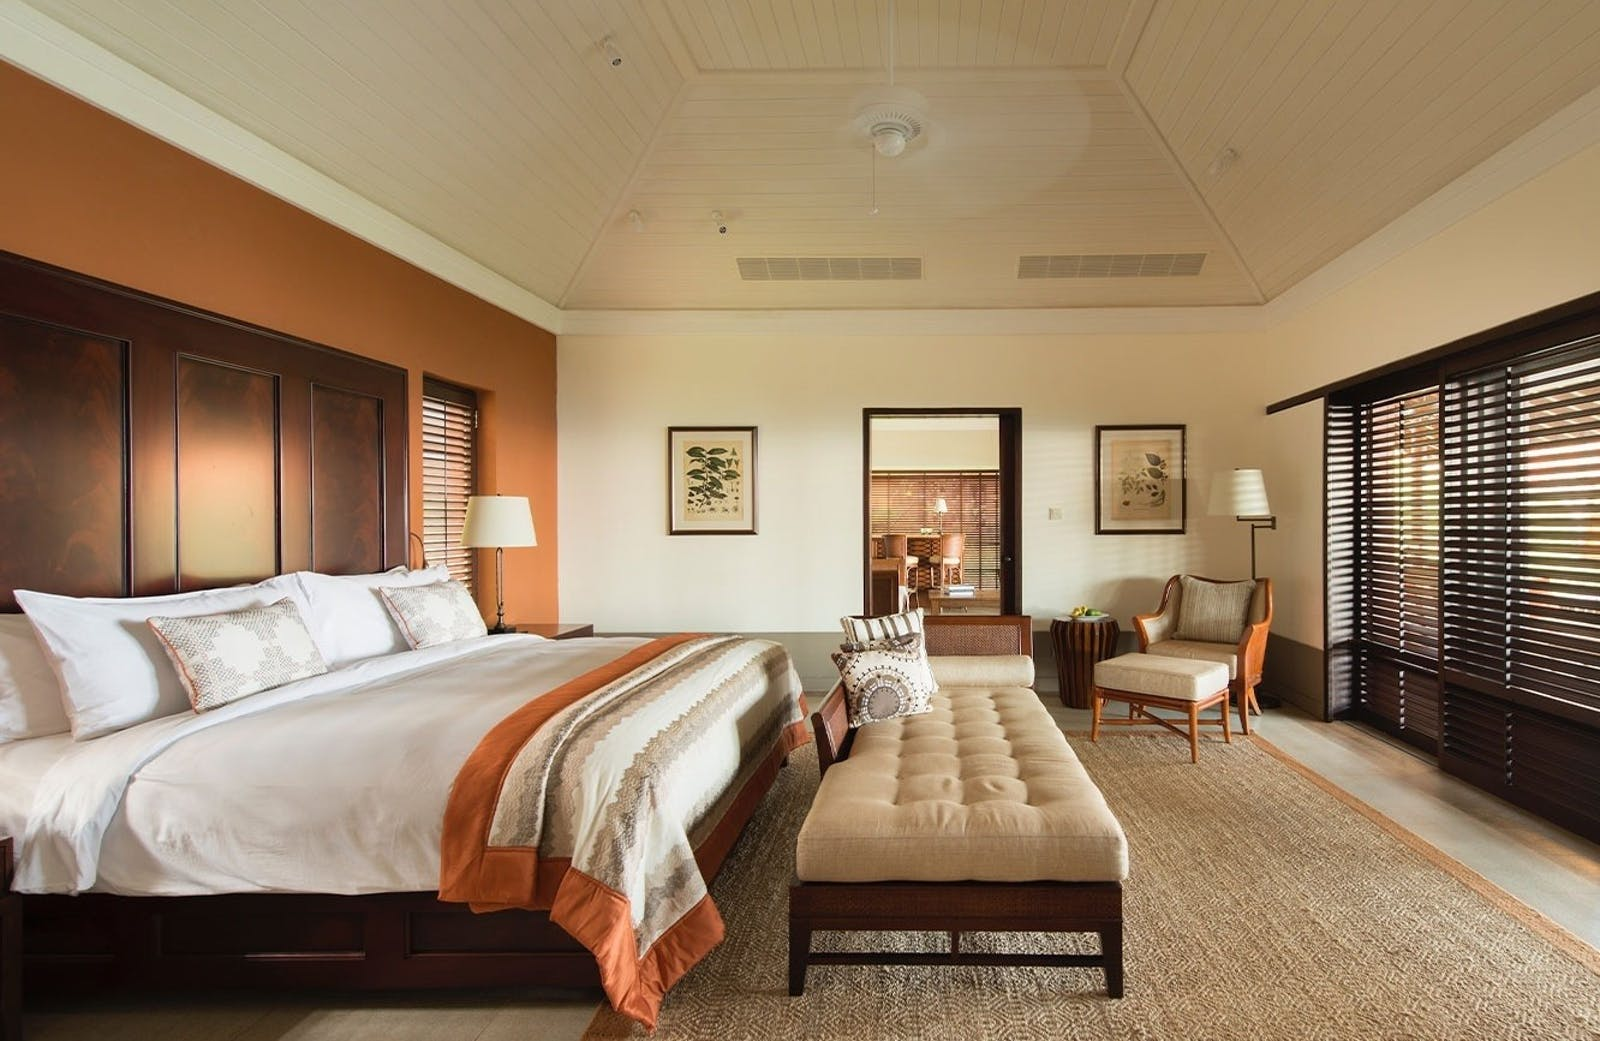 Room example at Cape Weligama